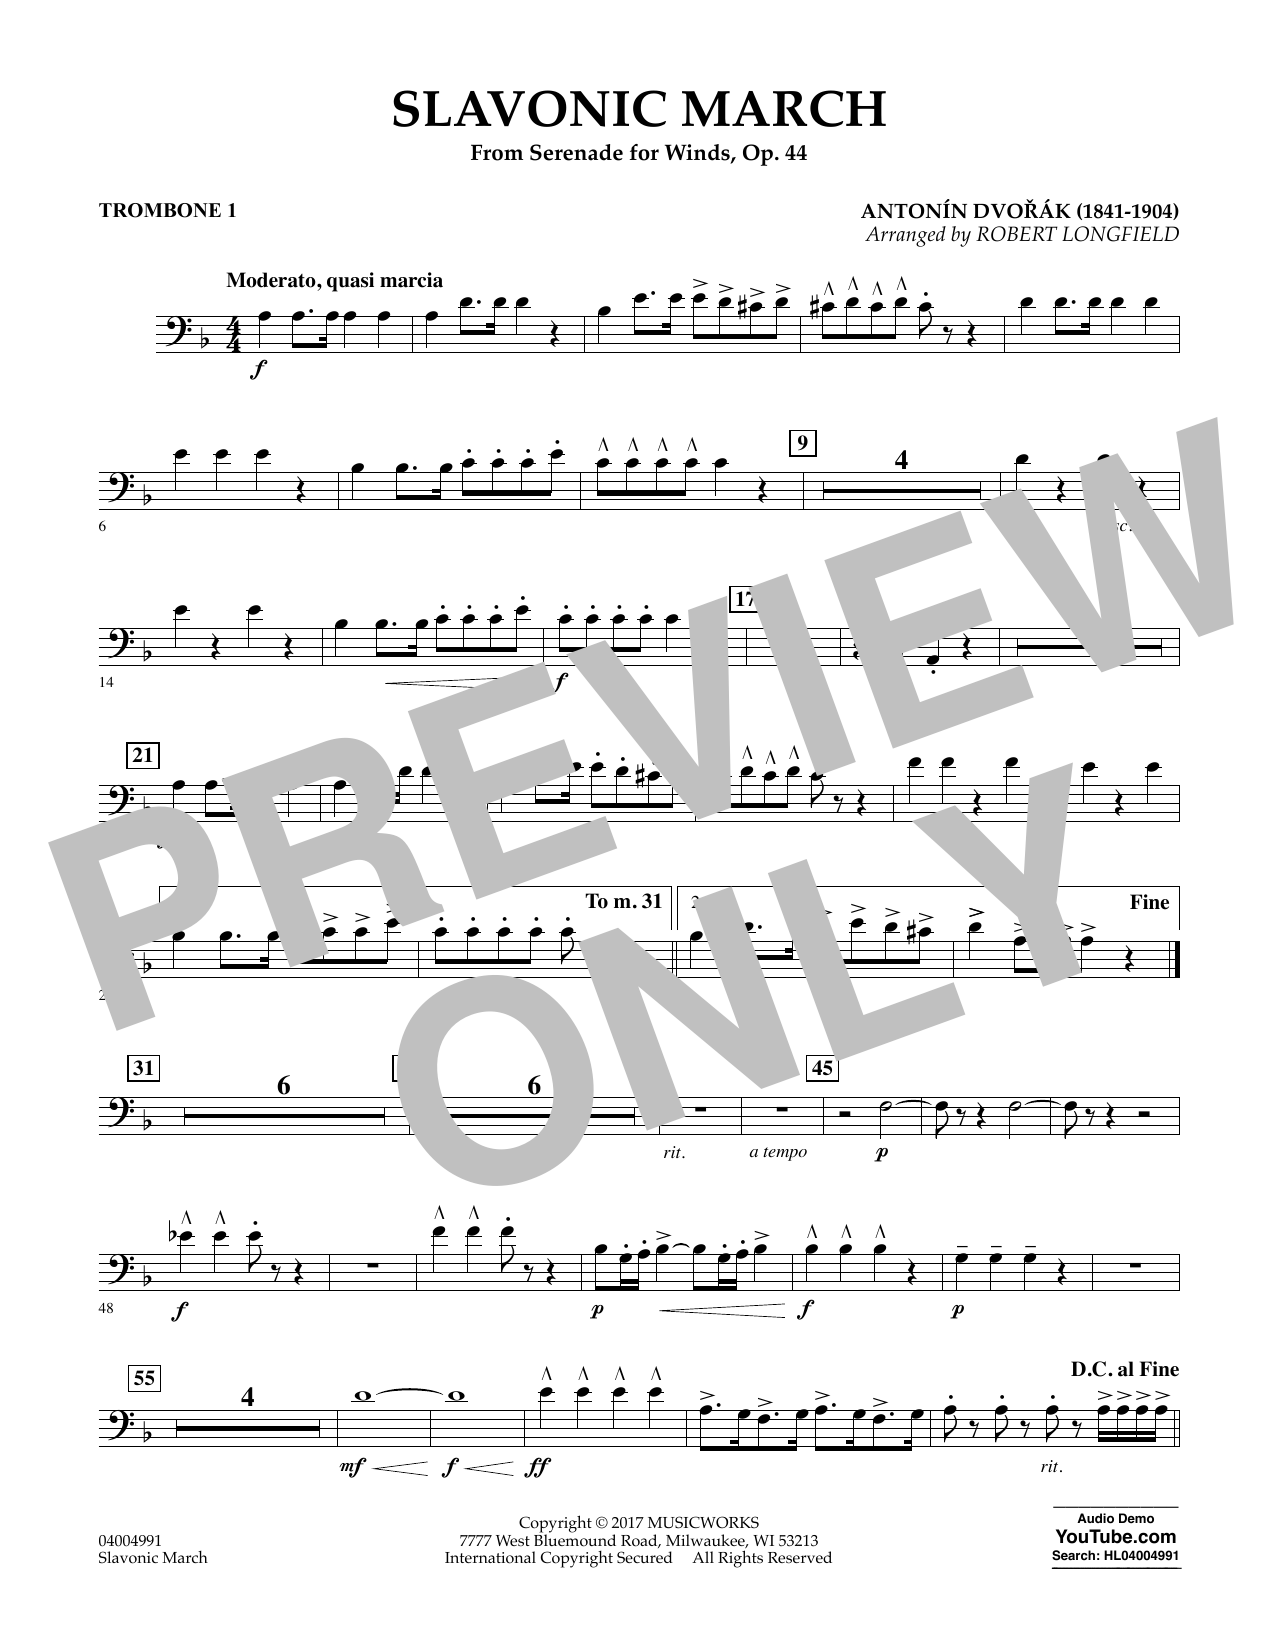 Slavonic March (from Serenade for Winds, Op. 44) - Trombone 1 Sheet Music